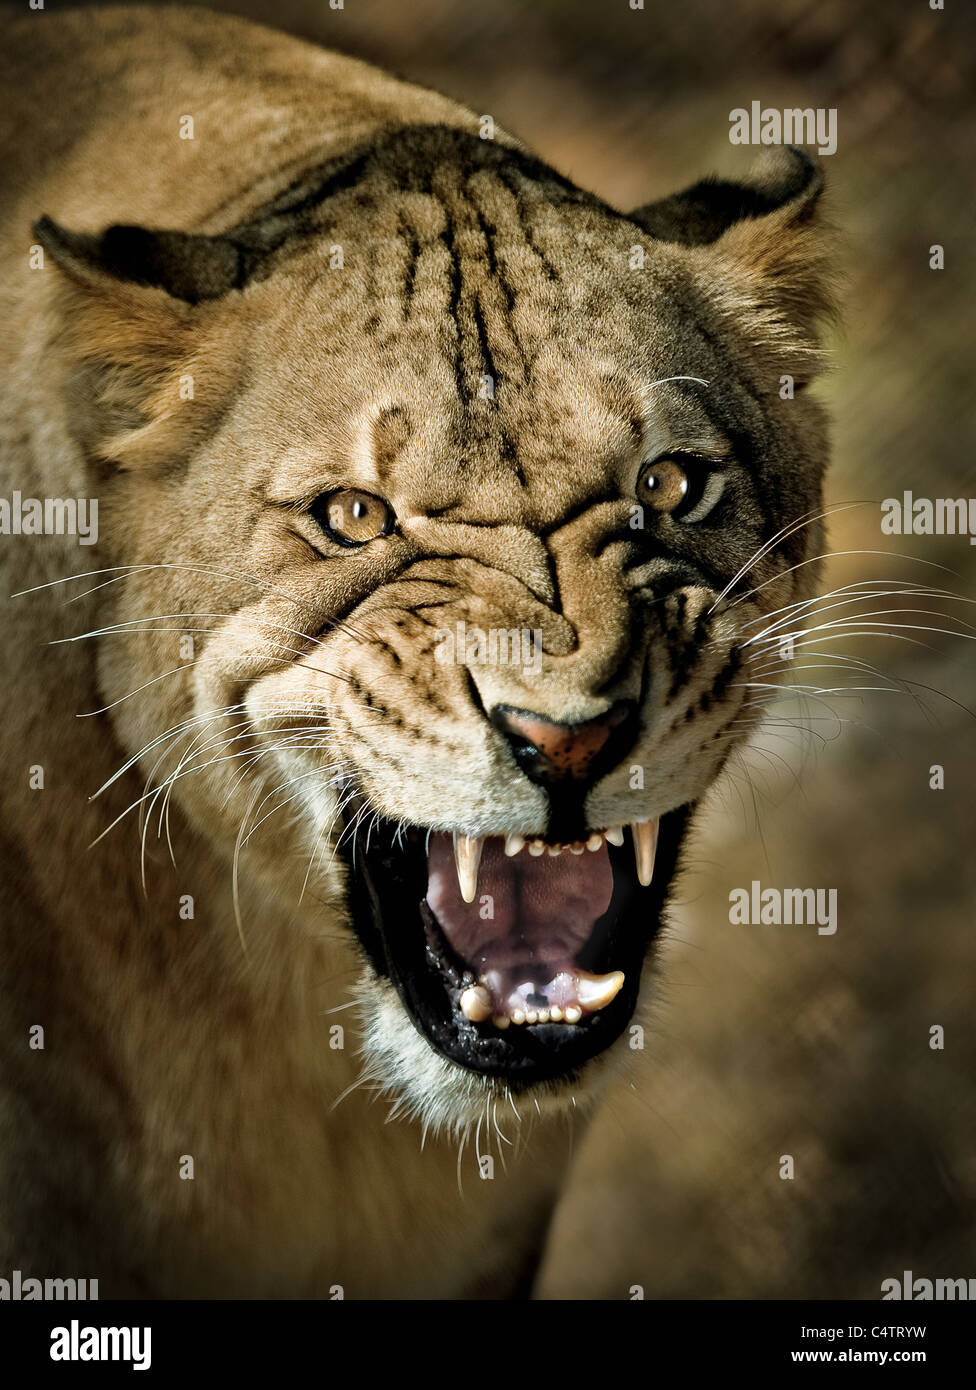 LIONESS CLOSEUP WITH MENACING SNARL LOOKING AT CAMERA - Stock Image